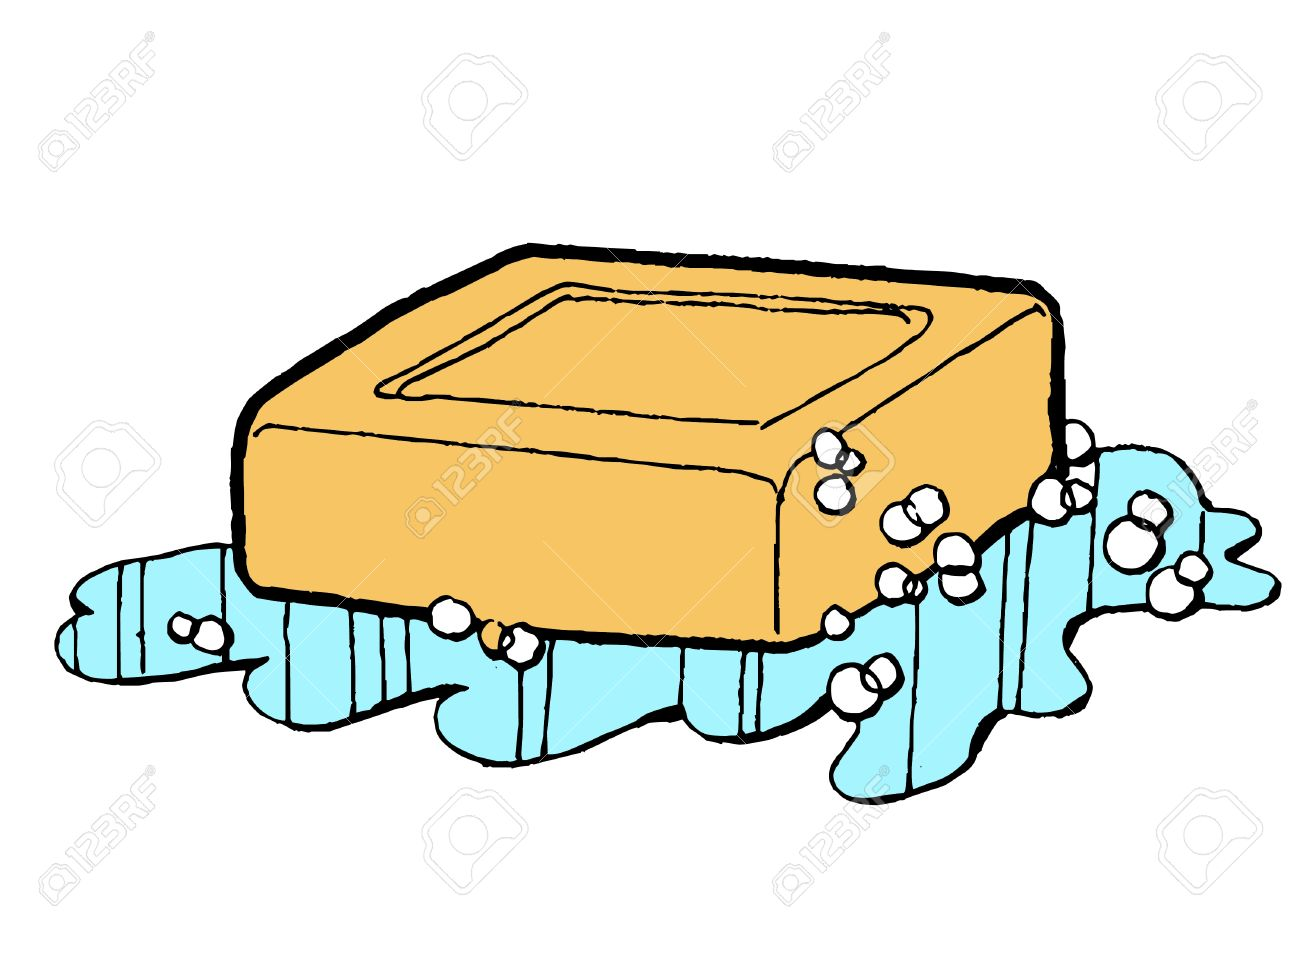 Soap and water clipart images.